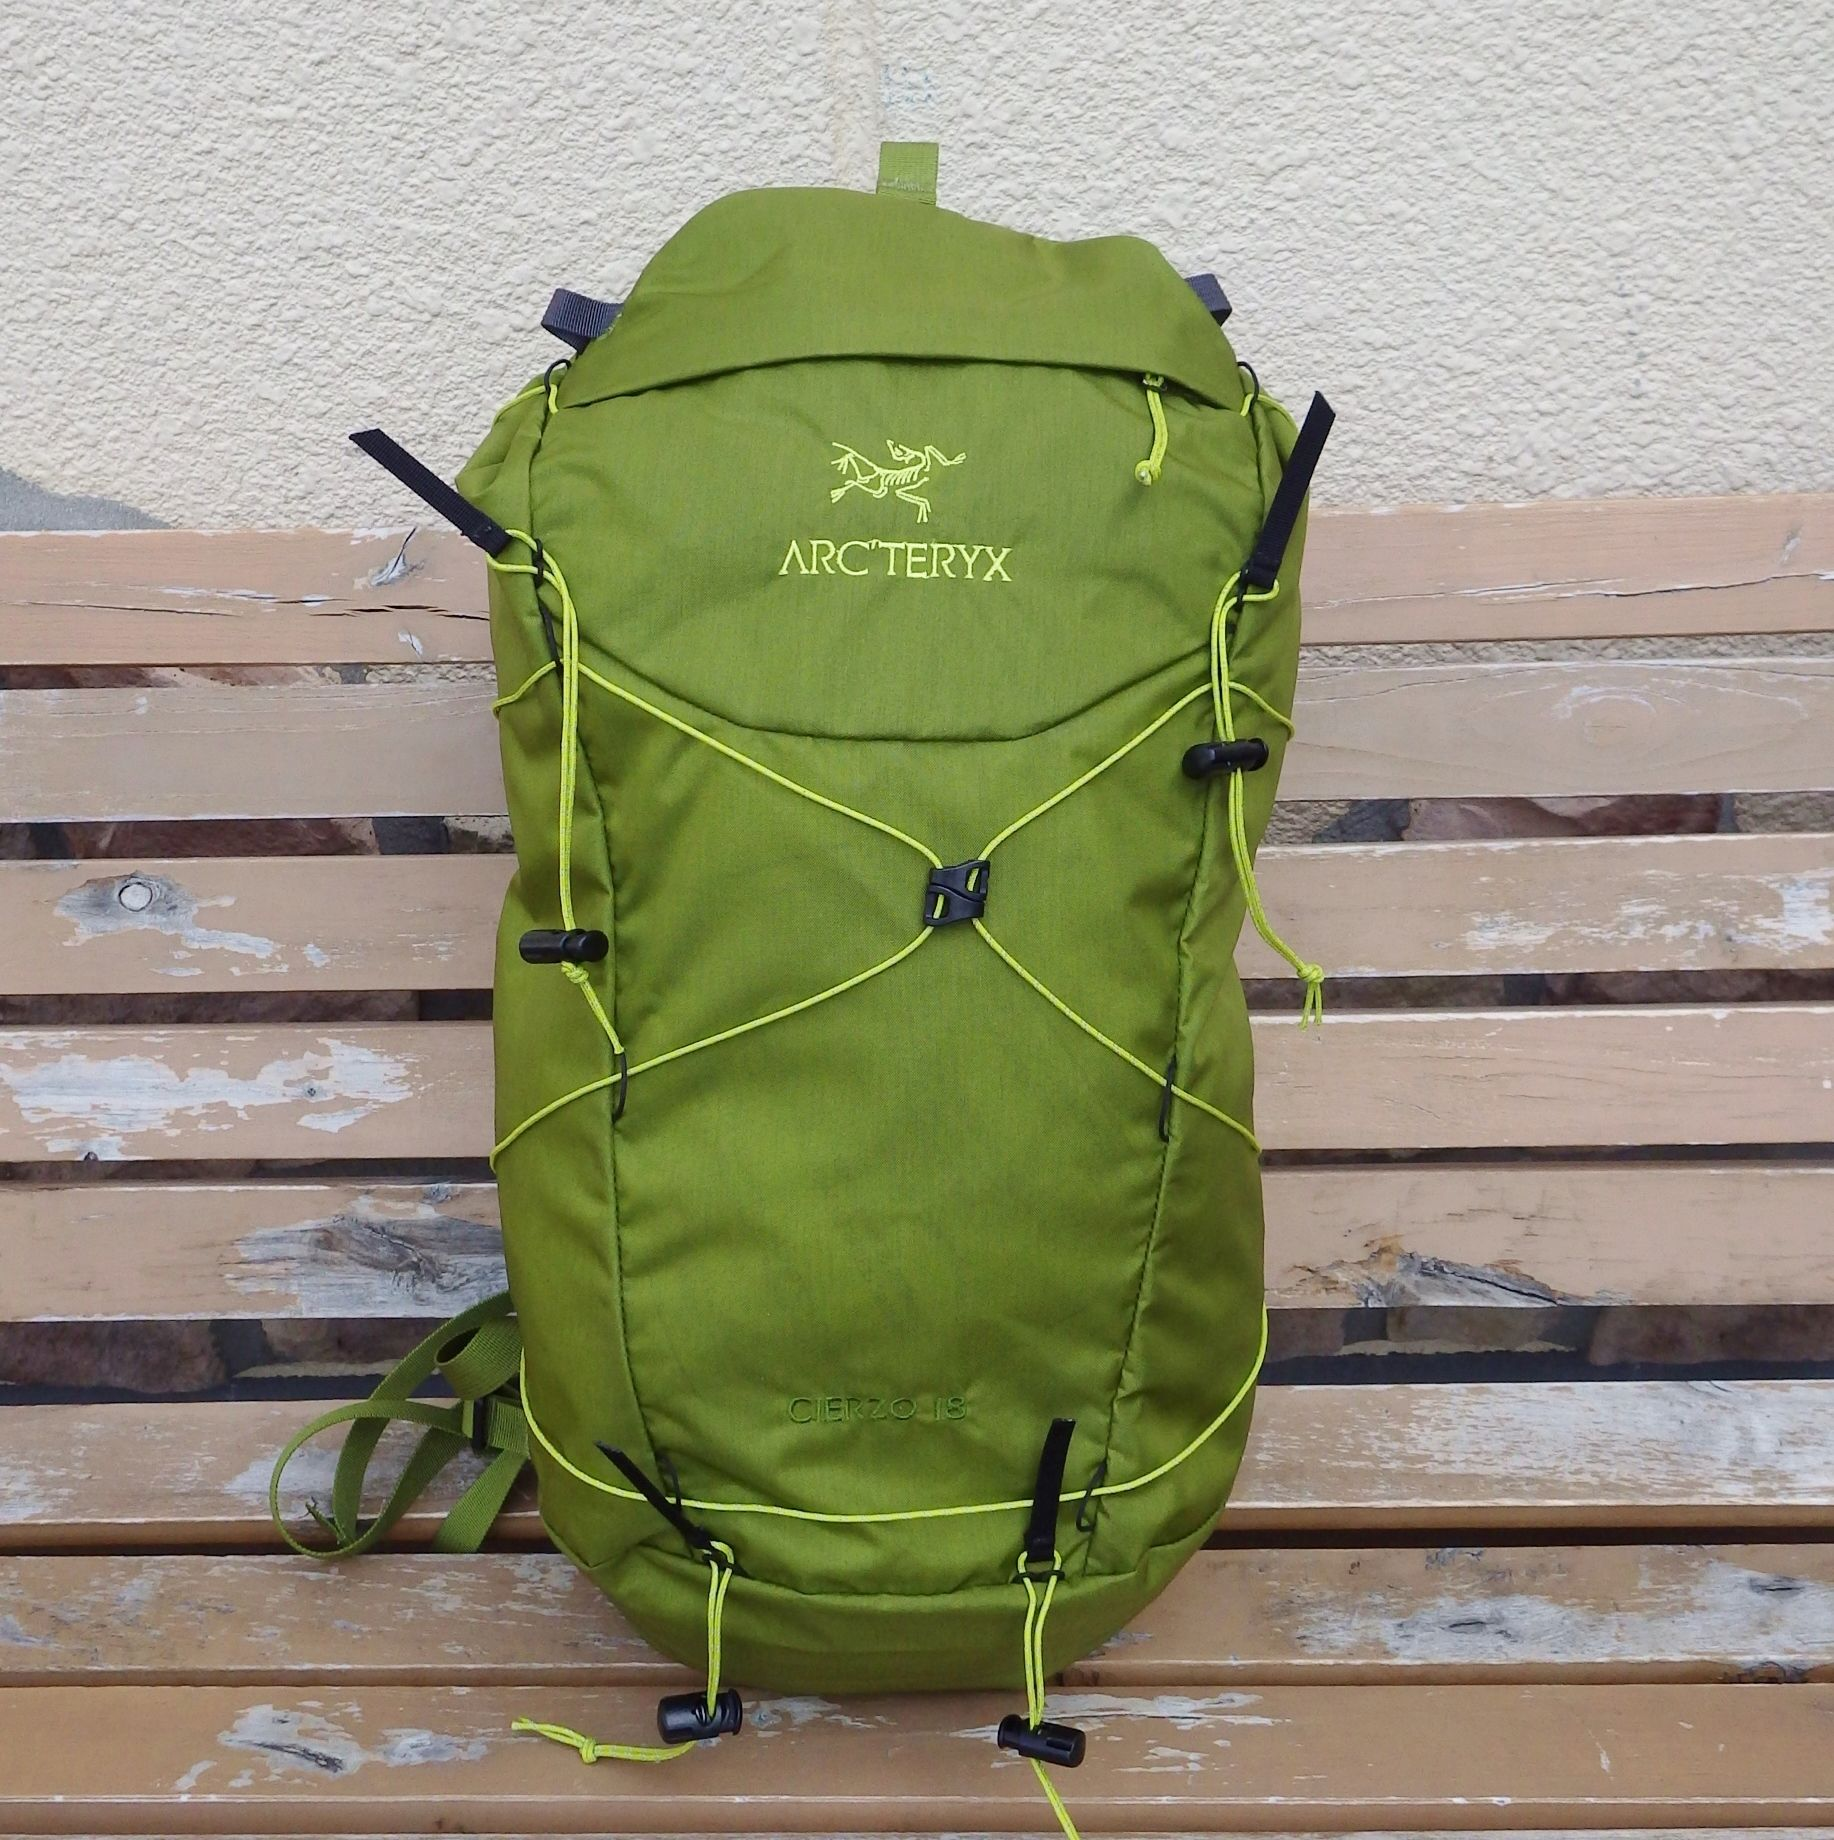 ARC'TERYX   Cierzo18  Backpack